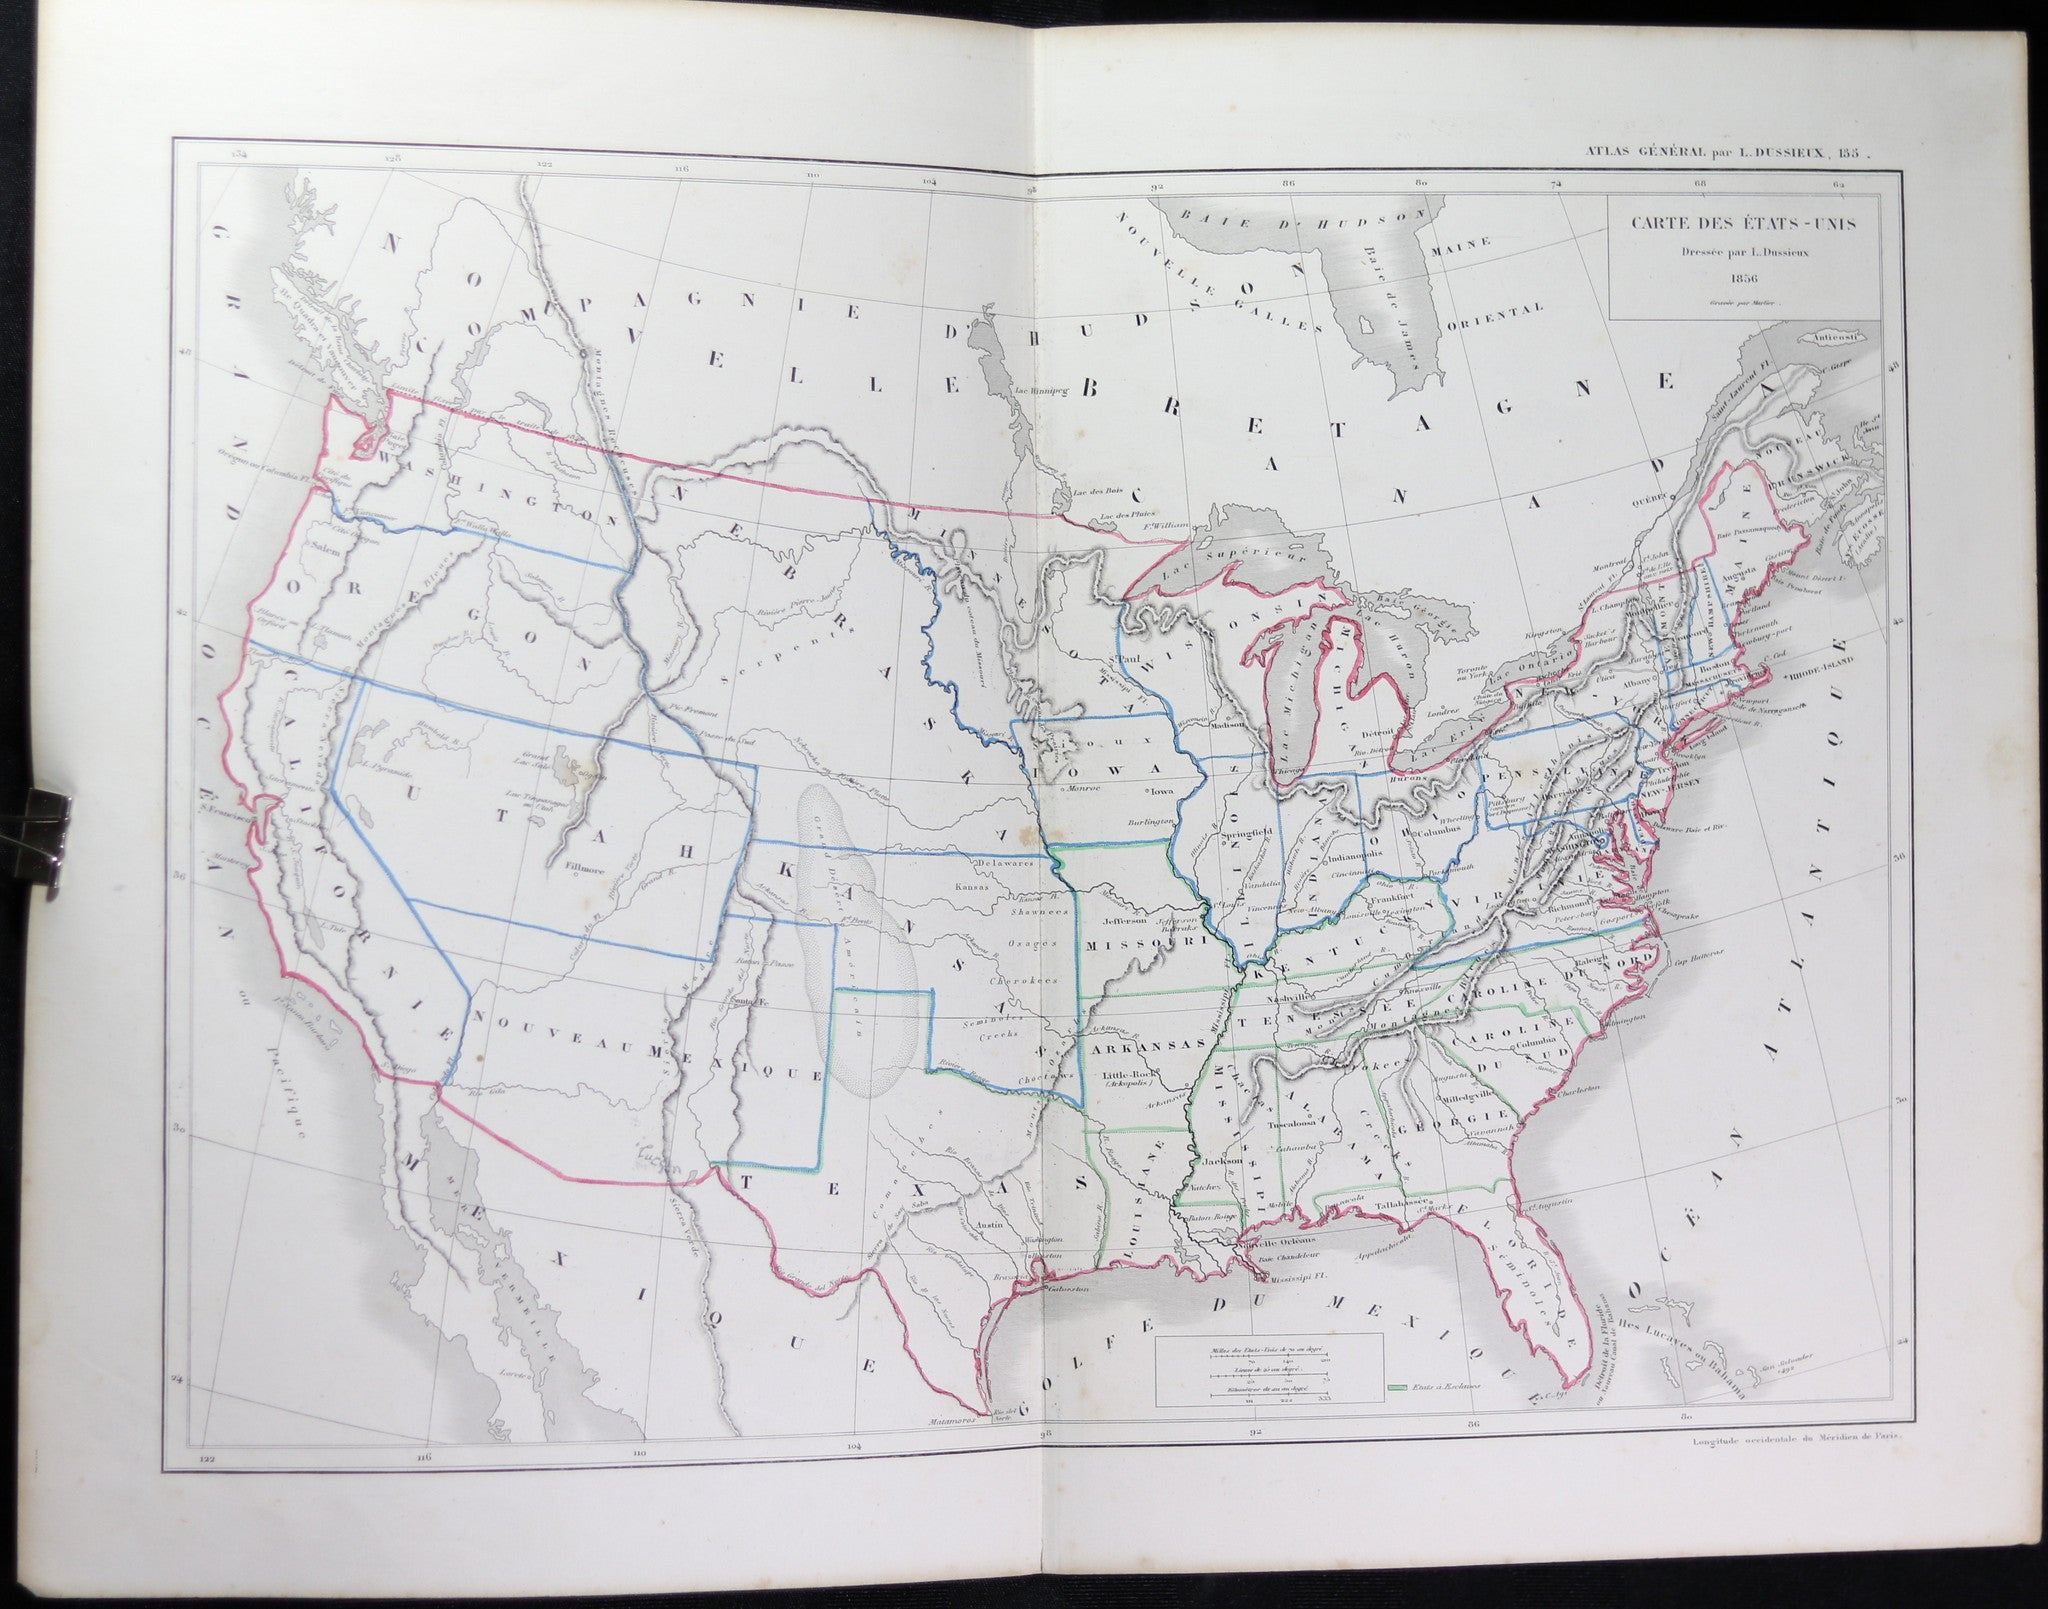 1856 French map of the United States and Canada by Dussieux